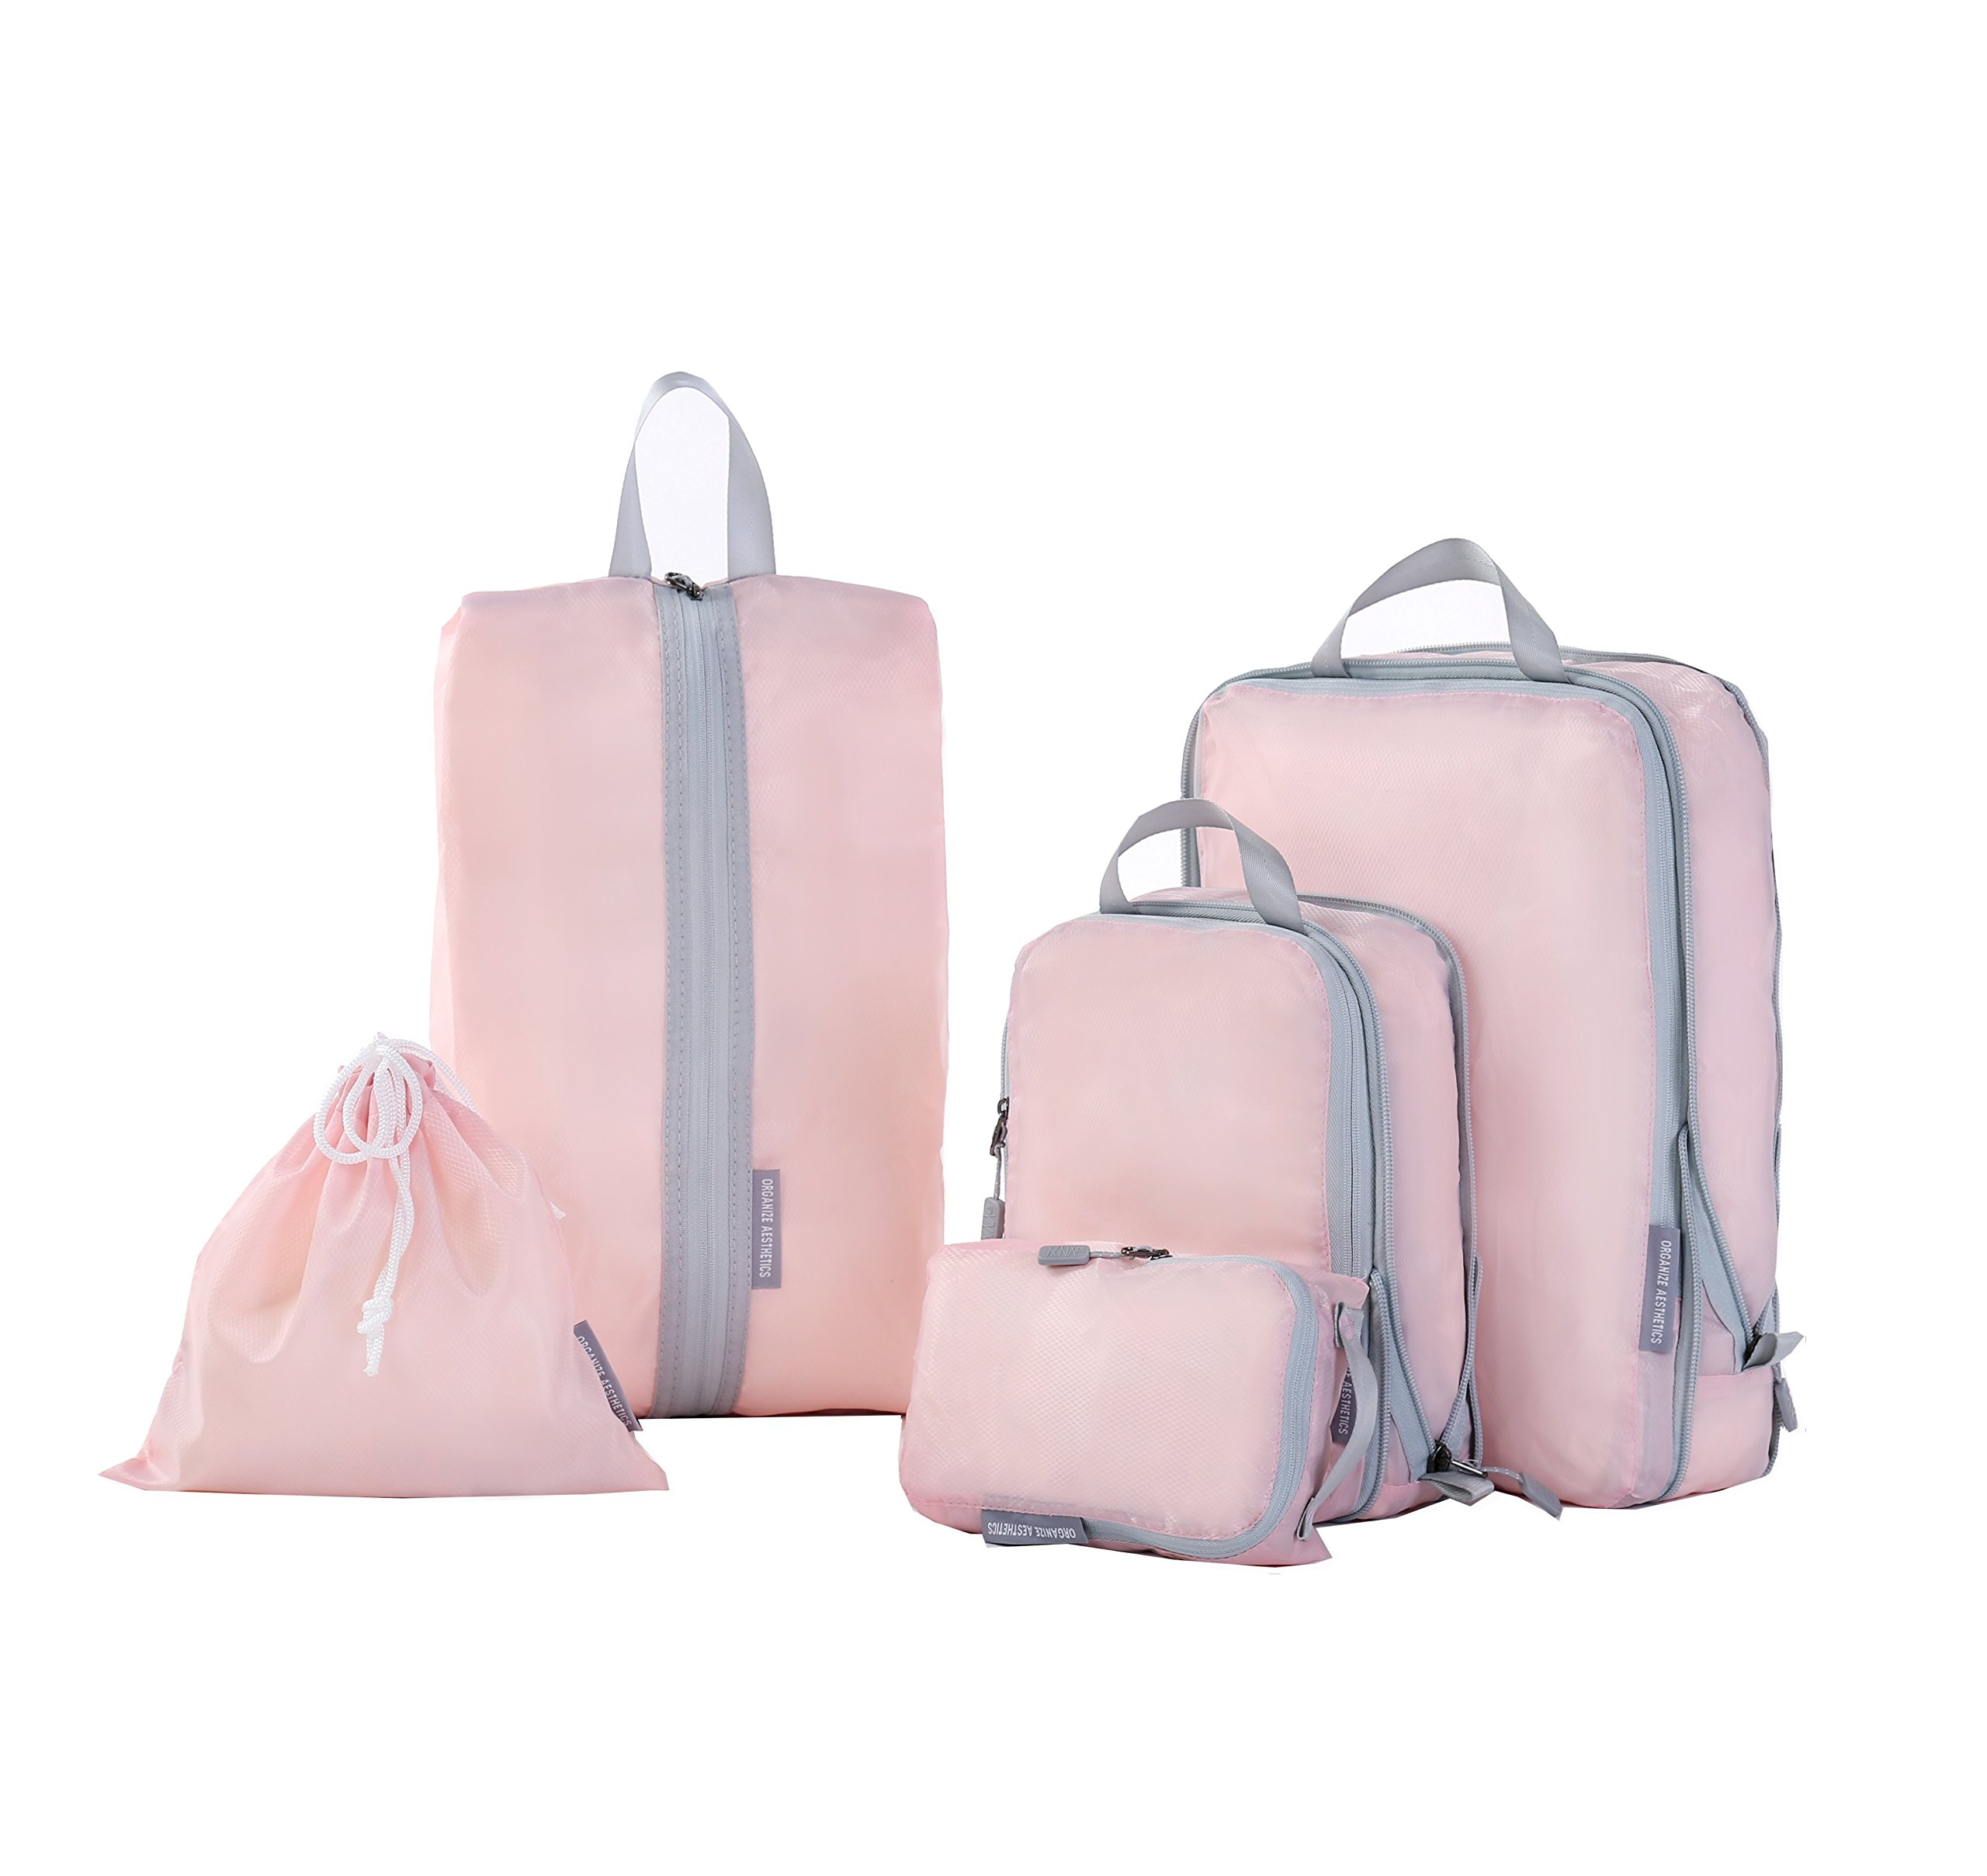 Compression Packing Cubes, JJ POWER Travel Backpack Organizers X-Large 2 Set (Five set- Pink)